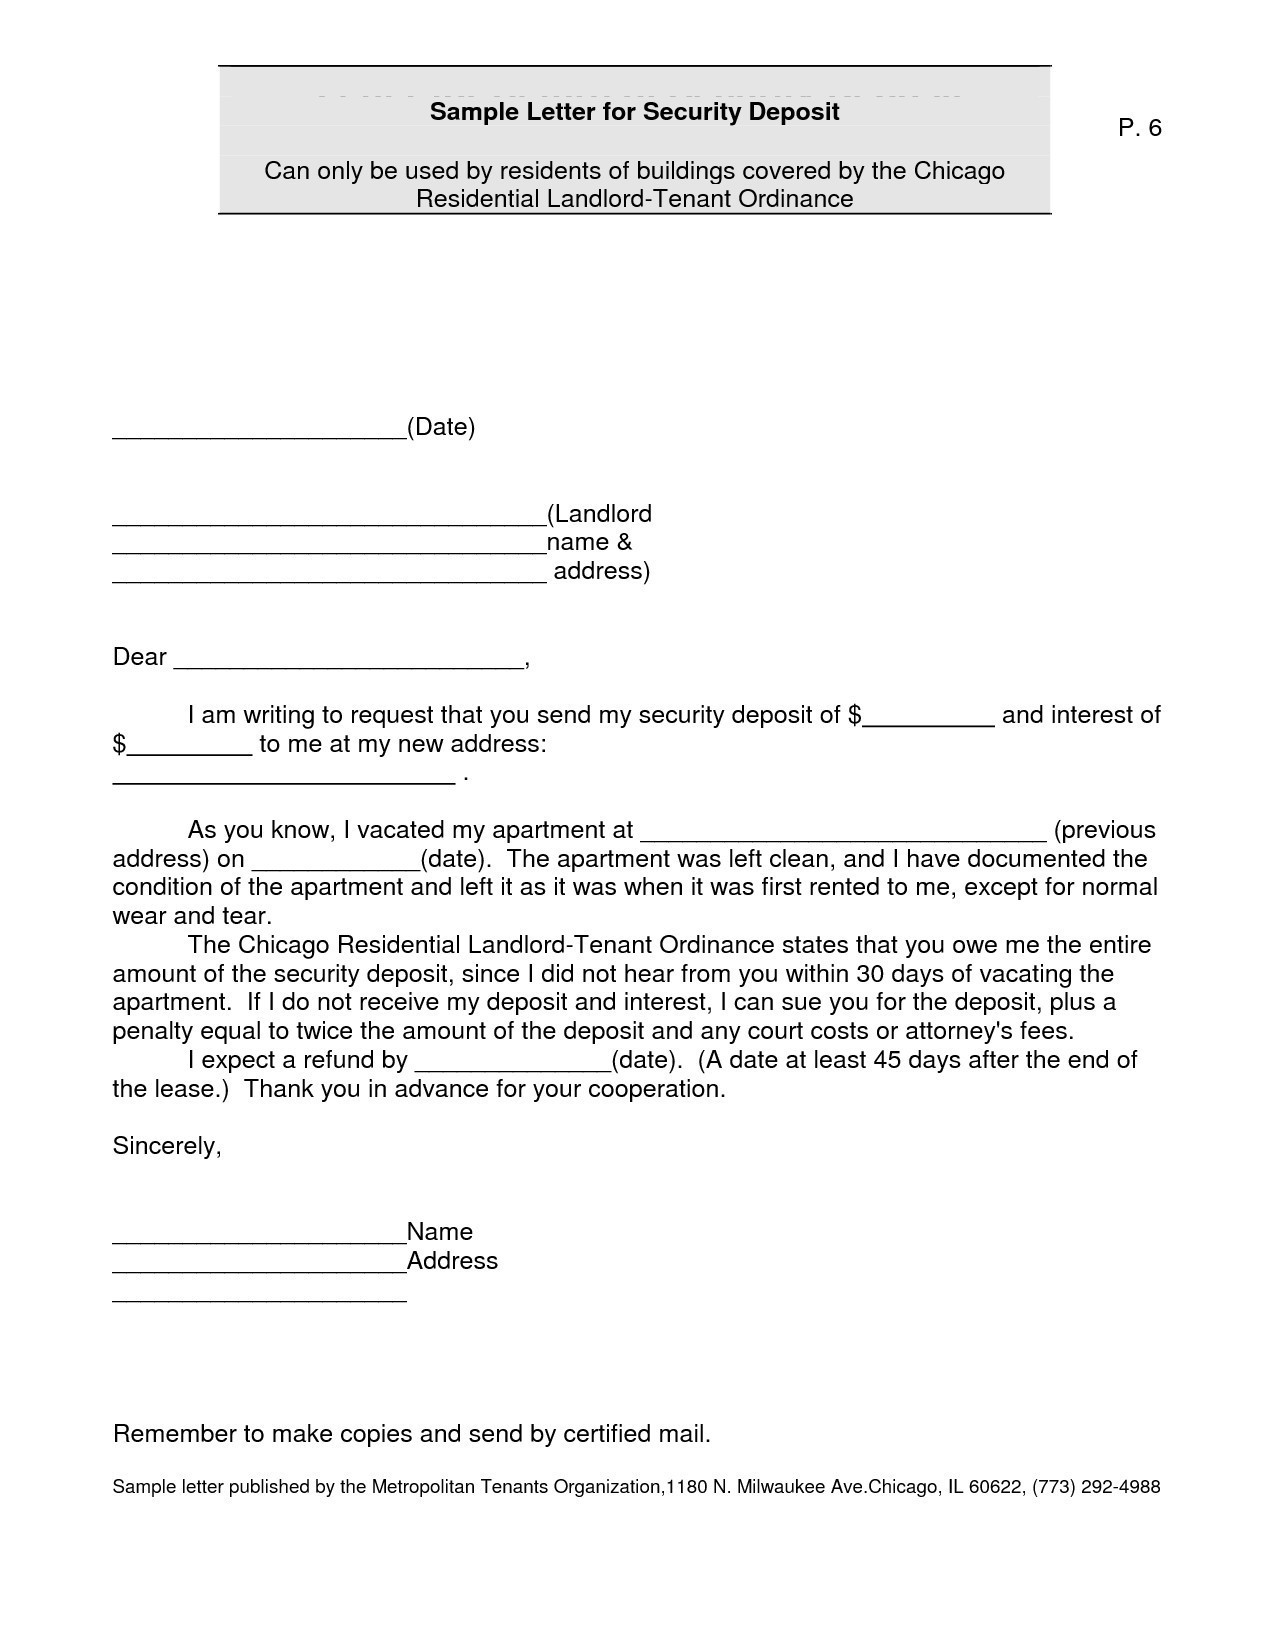 security deposit demand letter template florida example-New Refund Letter Best Letter format for Requesting A Refund Best Best S Demand for 14-a